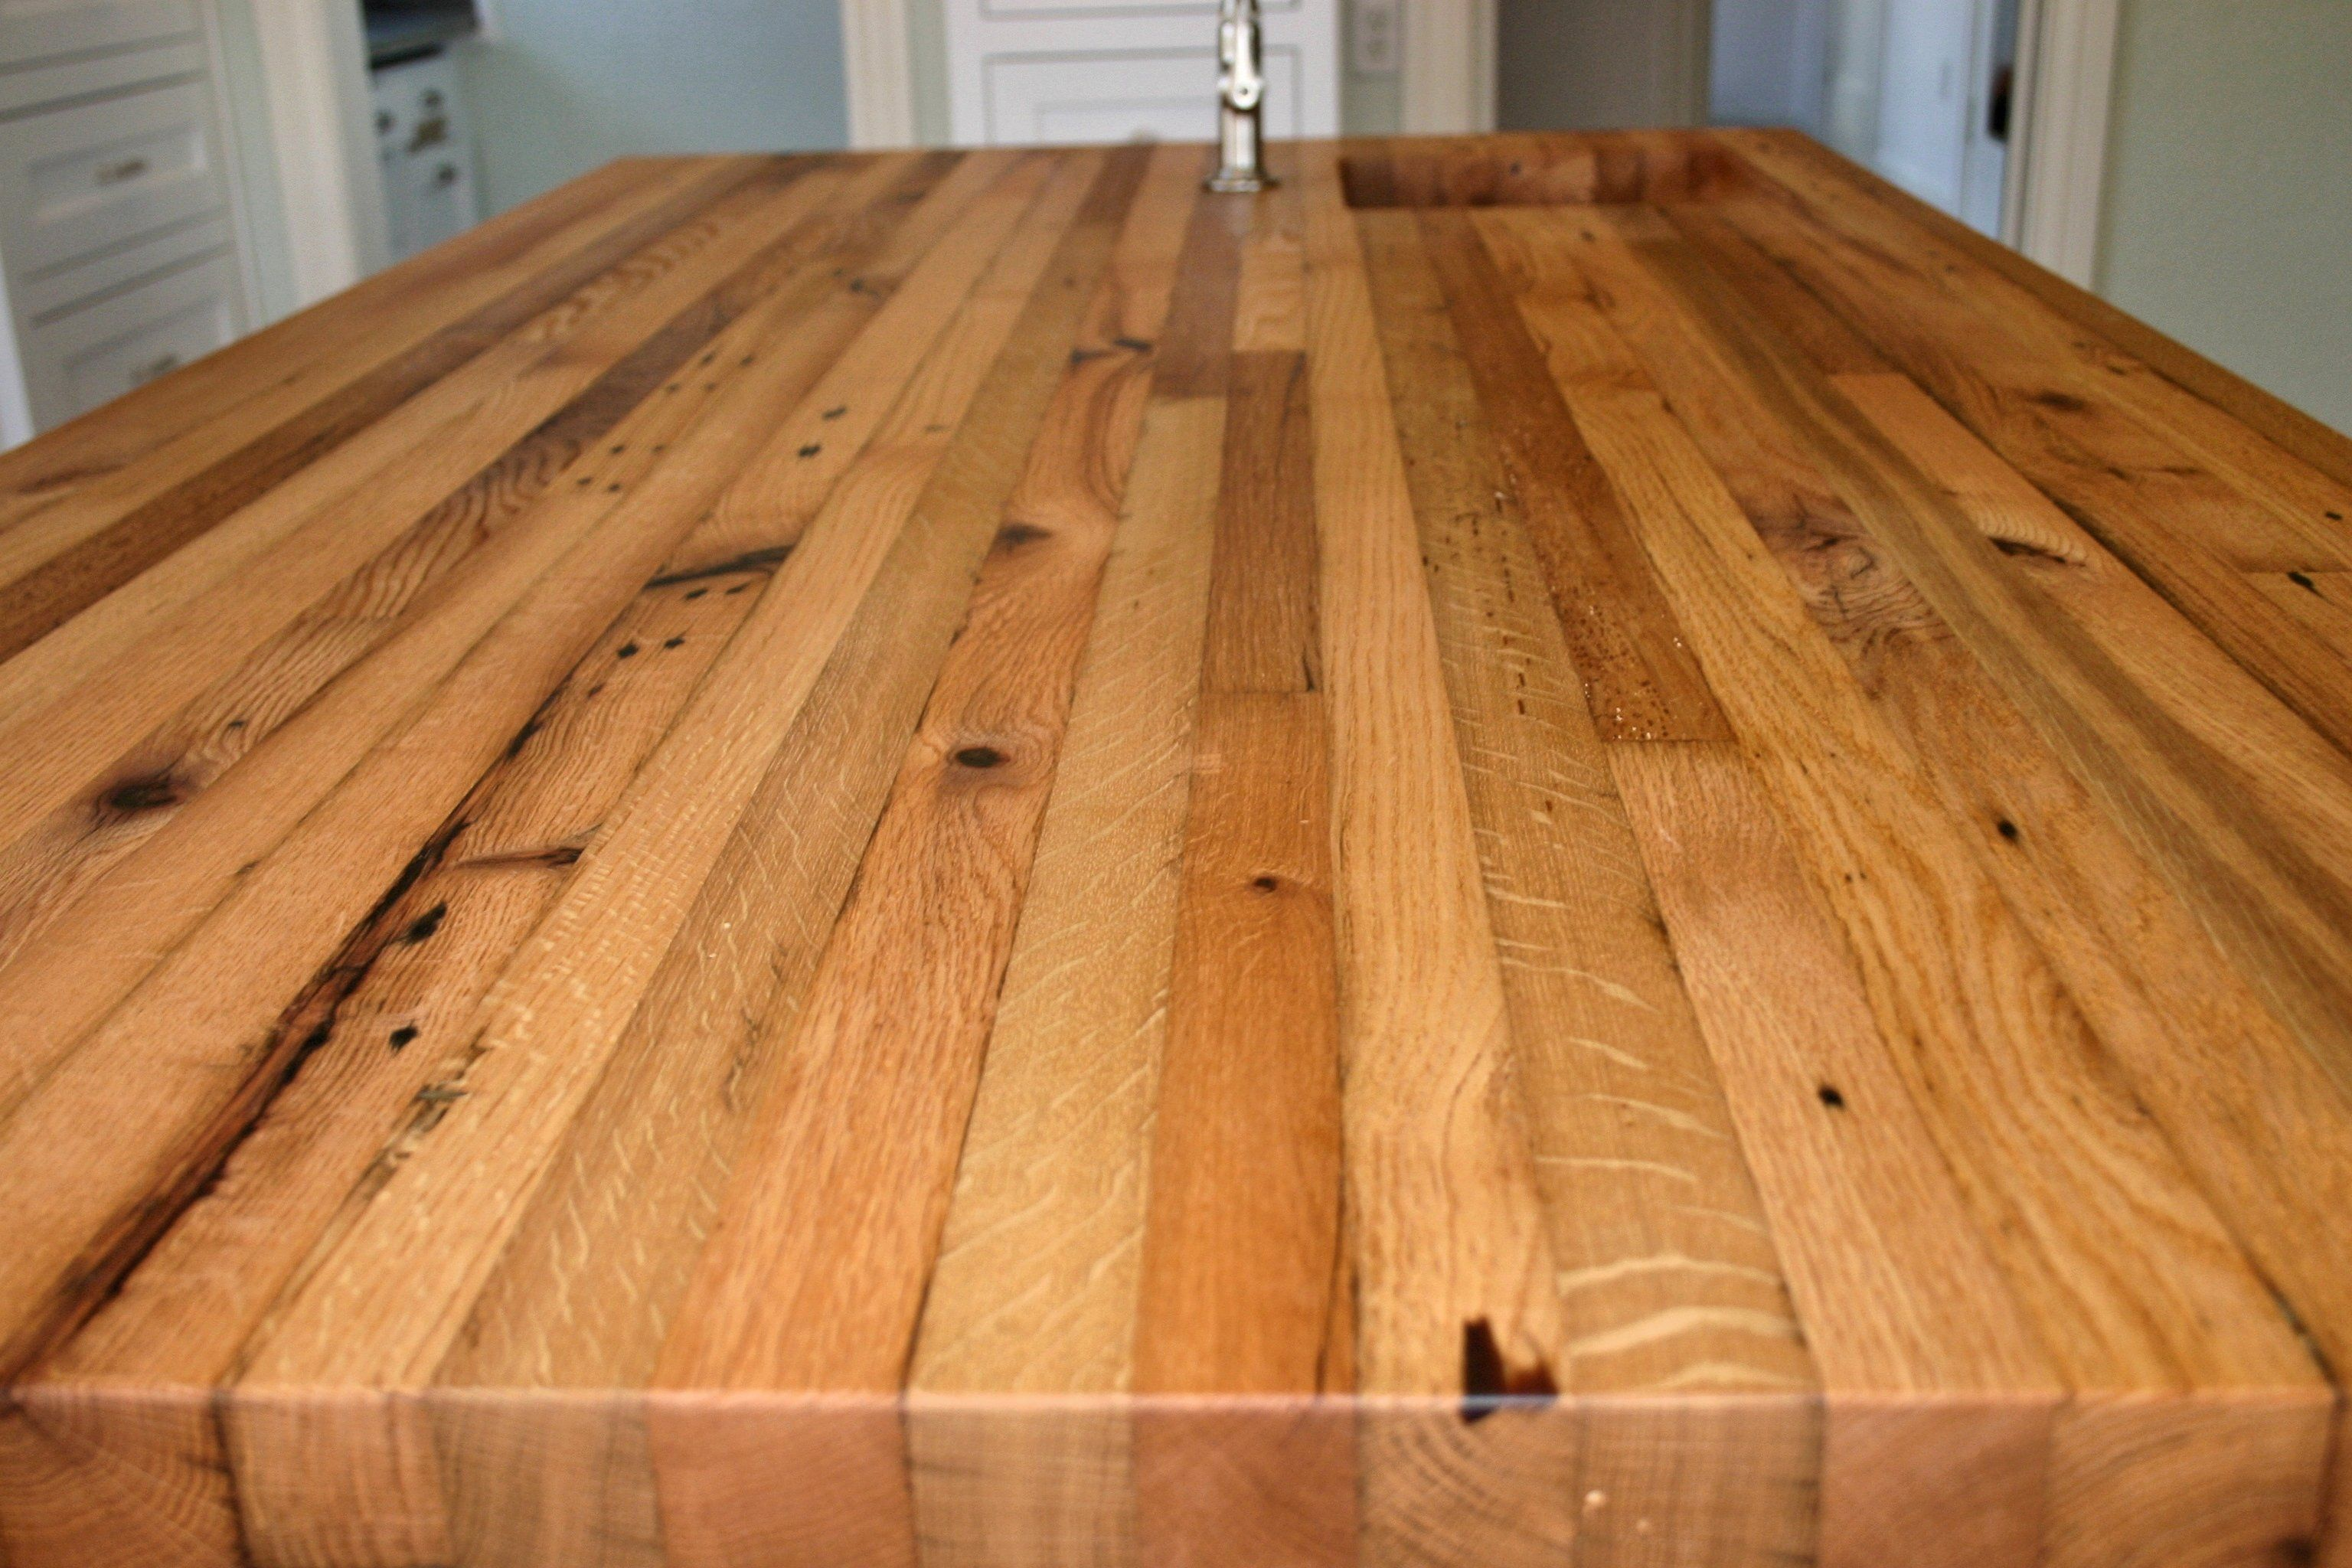 Reclaimed White Oak Face Grain Custom Wood Island Countertop